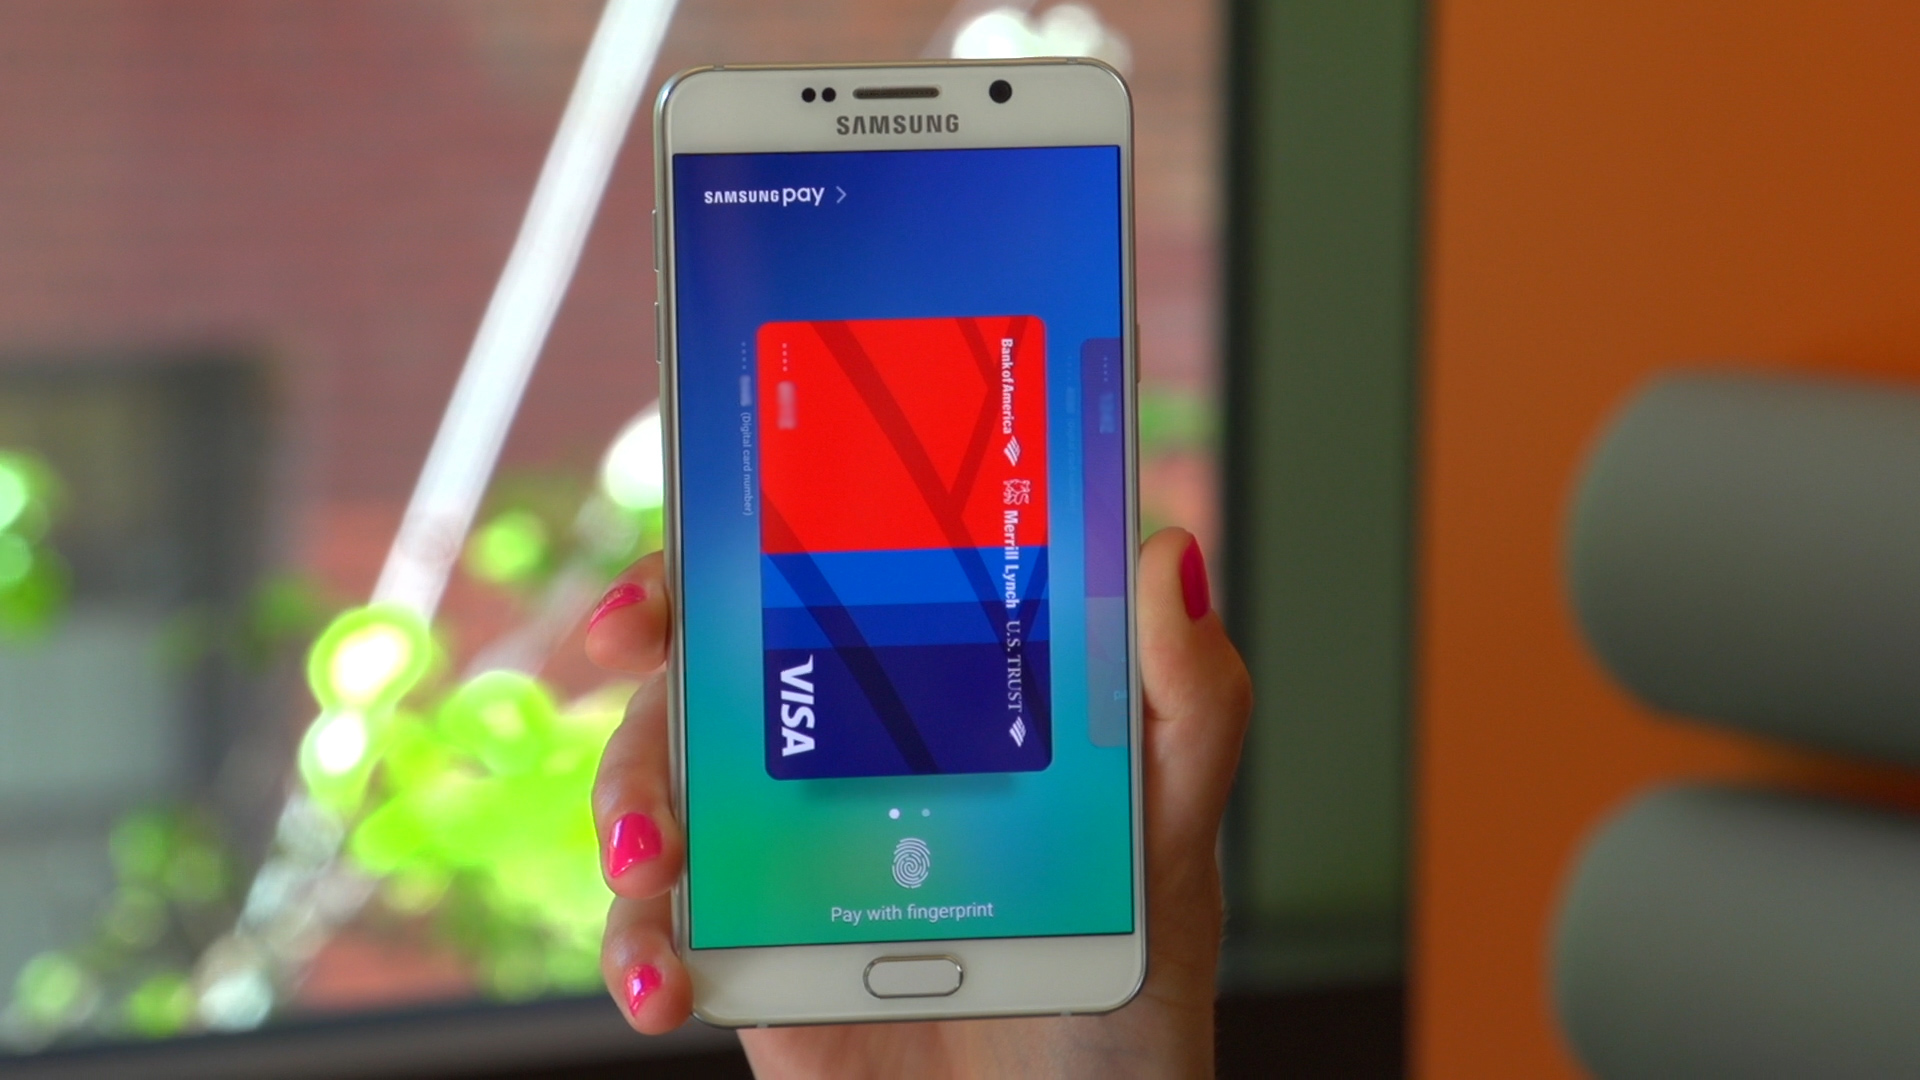 Video: Samsung Pay makes mobile payments easy